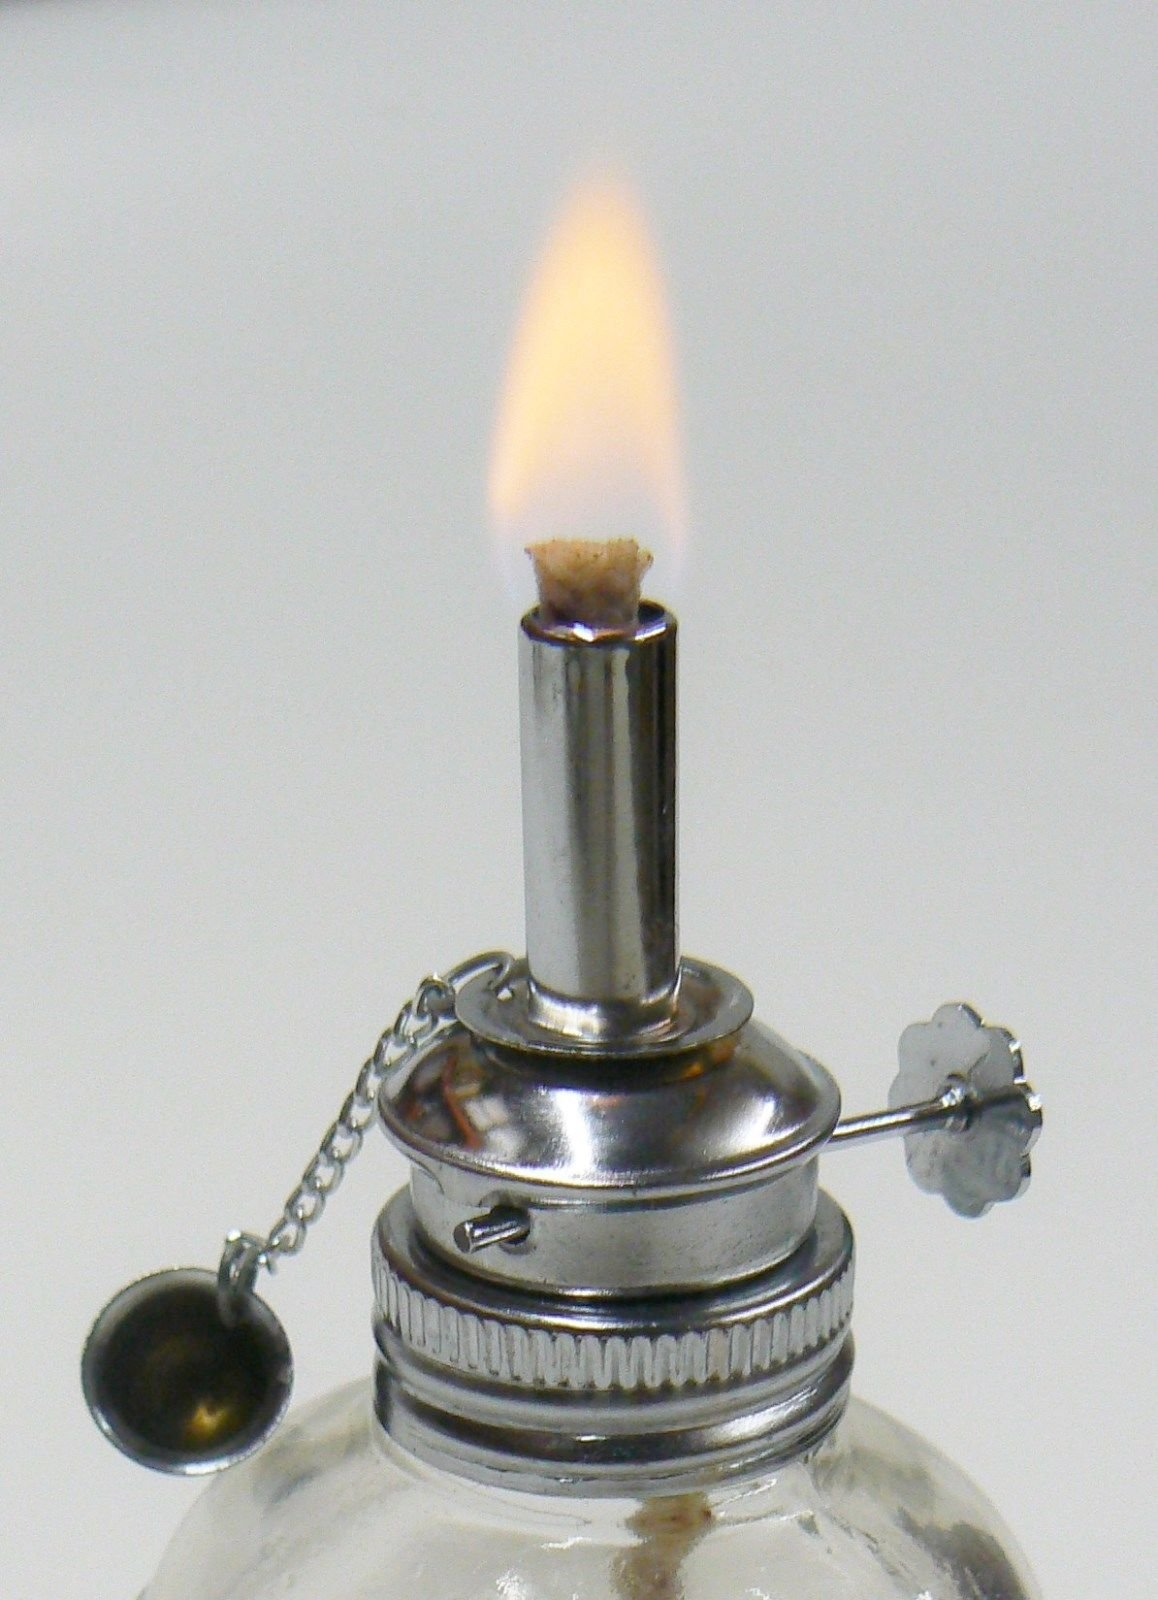 Alcohol Lamp Glass Spirit Lamp Burner Faceted Sides & Adjustable Wick Wax Work by EUROTOOL (Image #1)